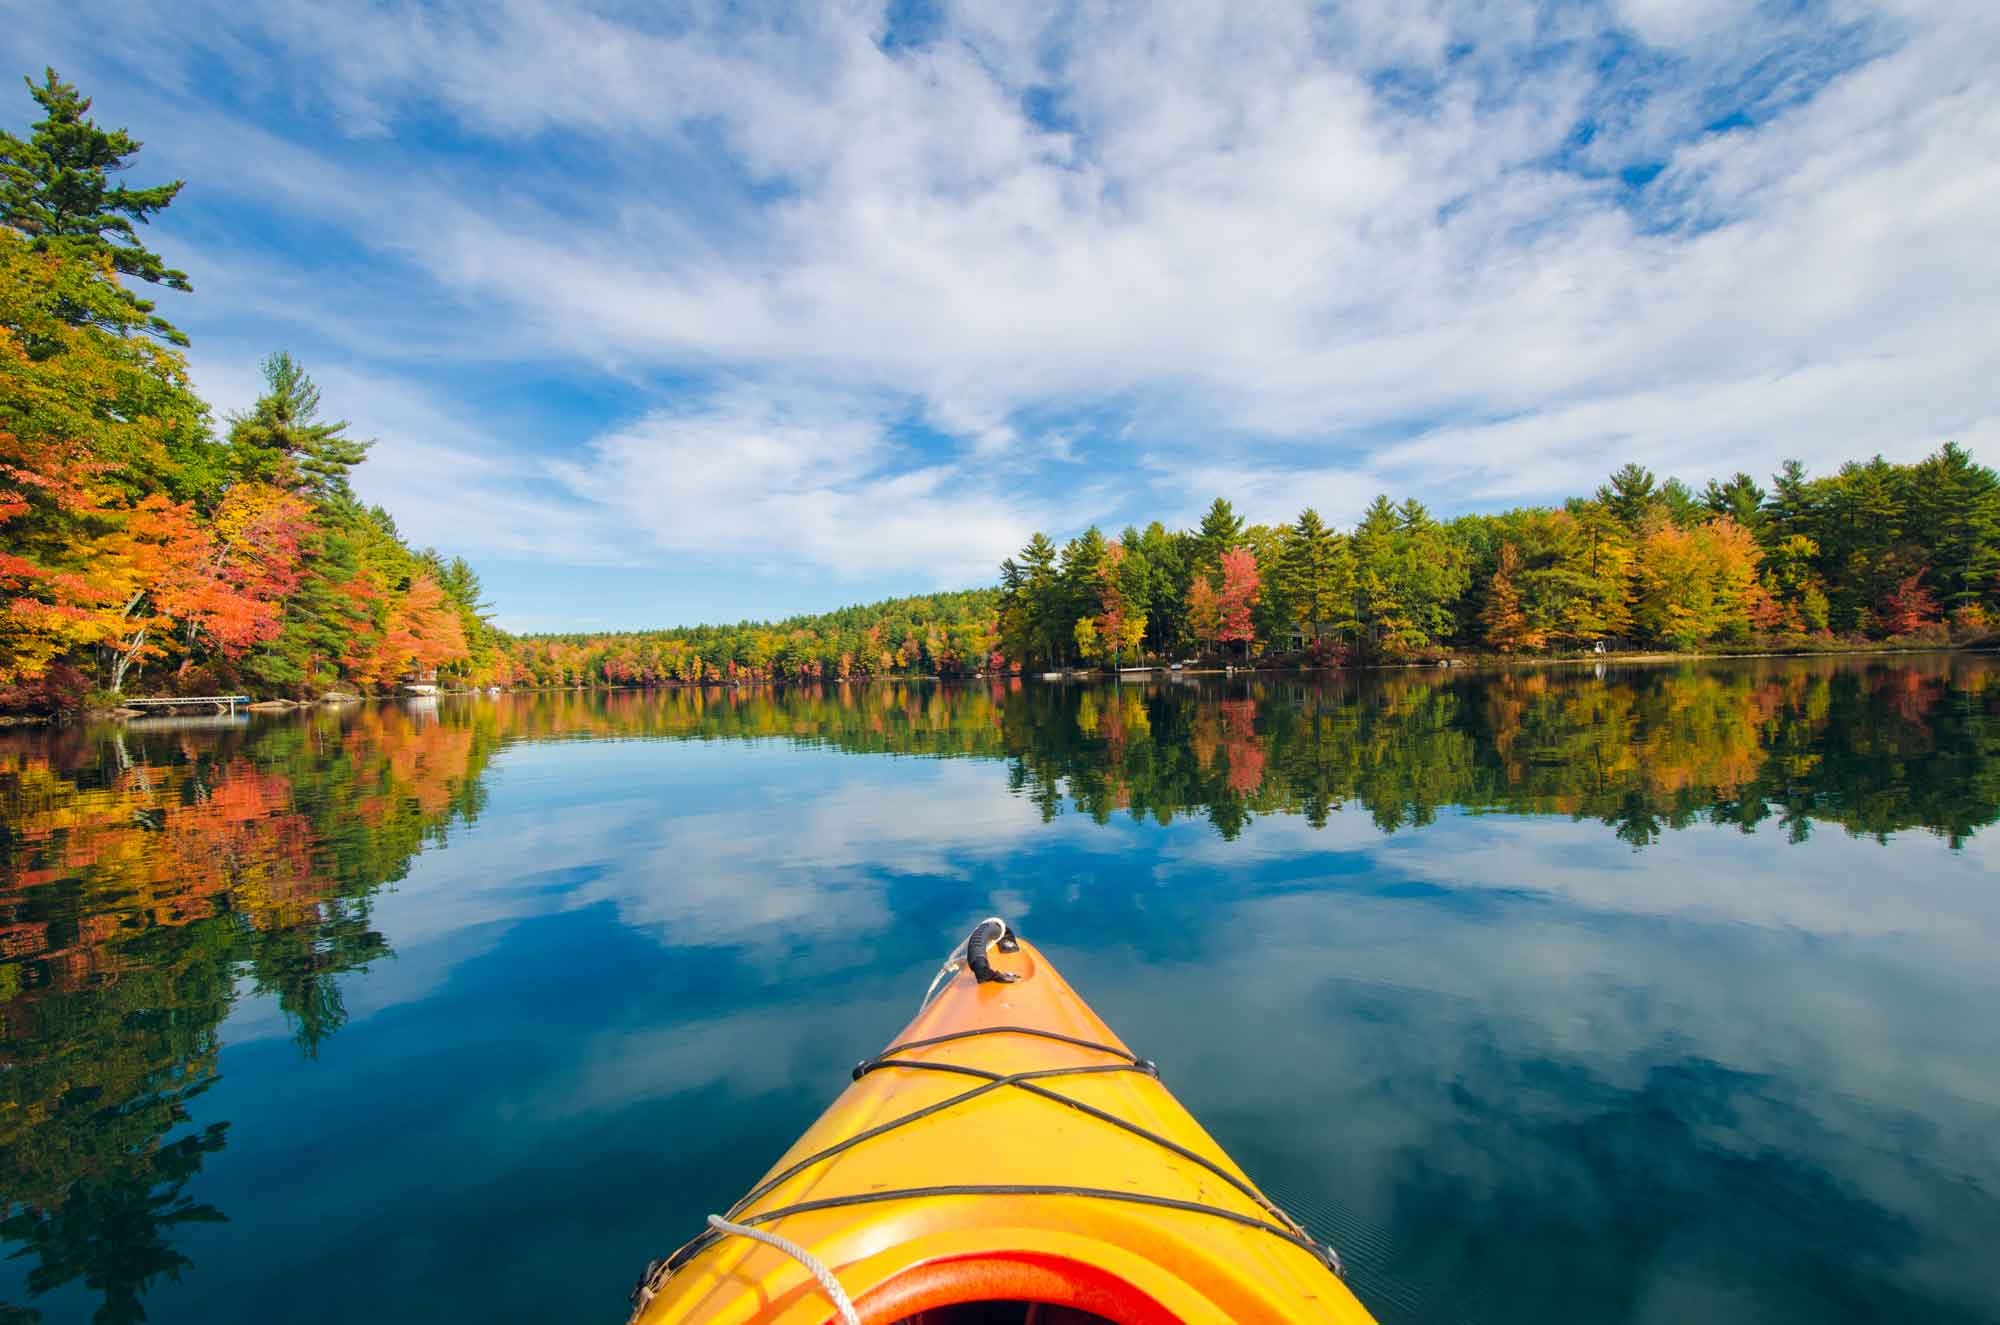 Exploring the islands and waterways of Maine by kayak or paddleboard is an amazing experience!